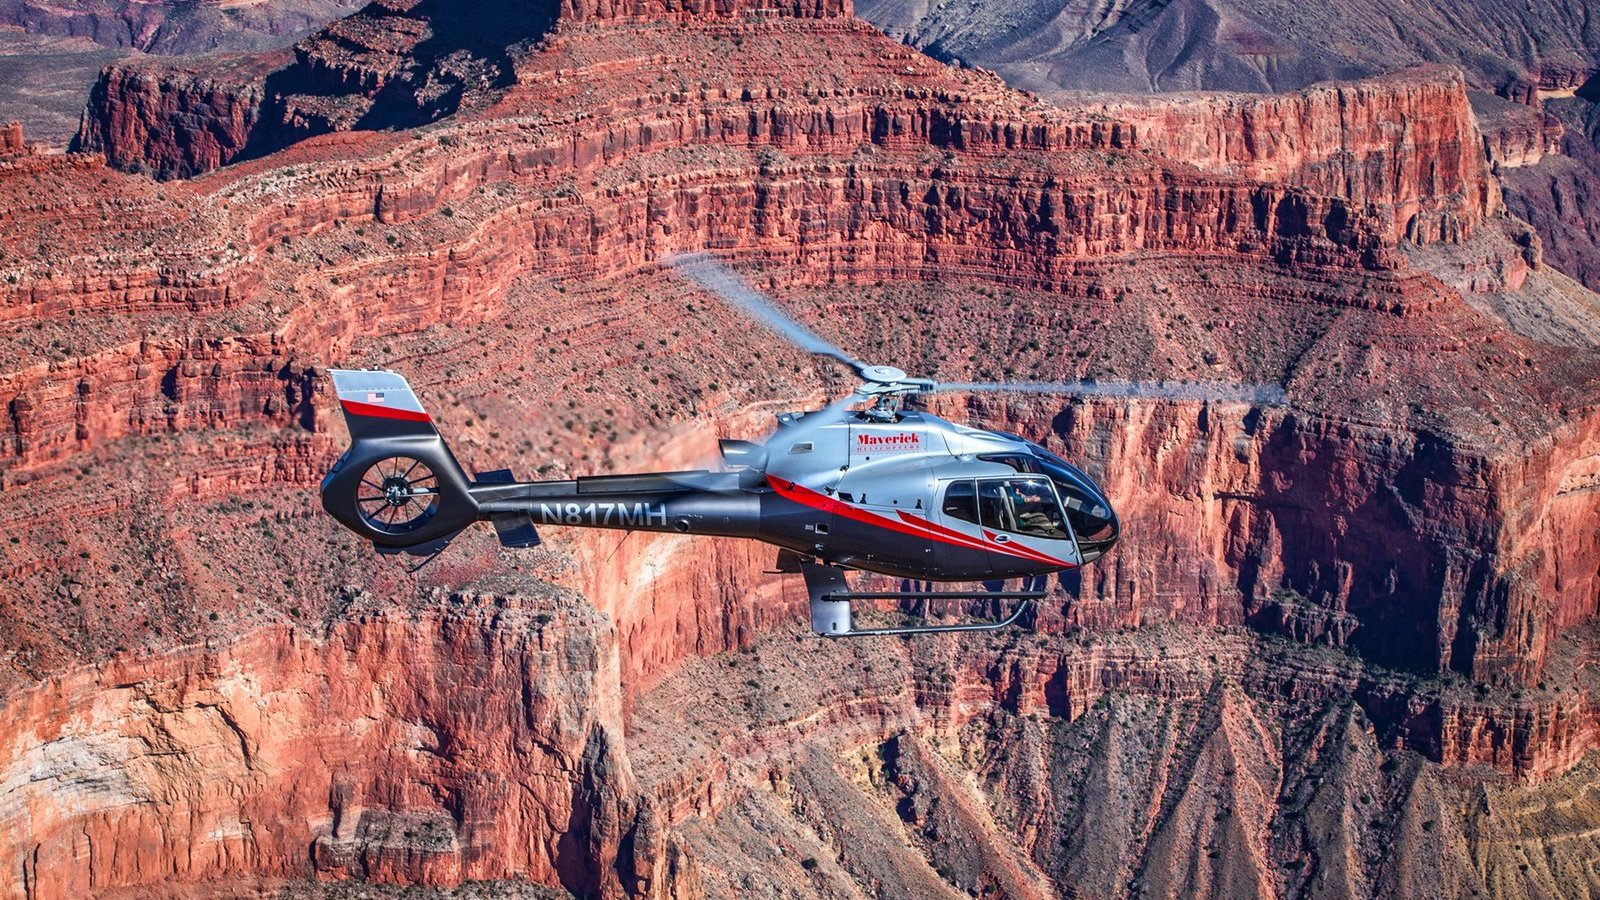 maverick helicopters grand canyon at with 4 Best Heli Sightseeing Tours In North America on Maverick Experience as well LocationPhotoDirectLink G45963 D775112 I42636076 Maverick Helicopters Las Vegas Nevada together with Maverick Helicopters Expands Opening First Location Hawaii further Vegas Voyage Or Vegas Nights Las Vegas Strip Helicopter Tour also Tour Indian Territory.